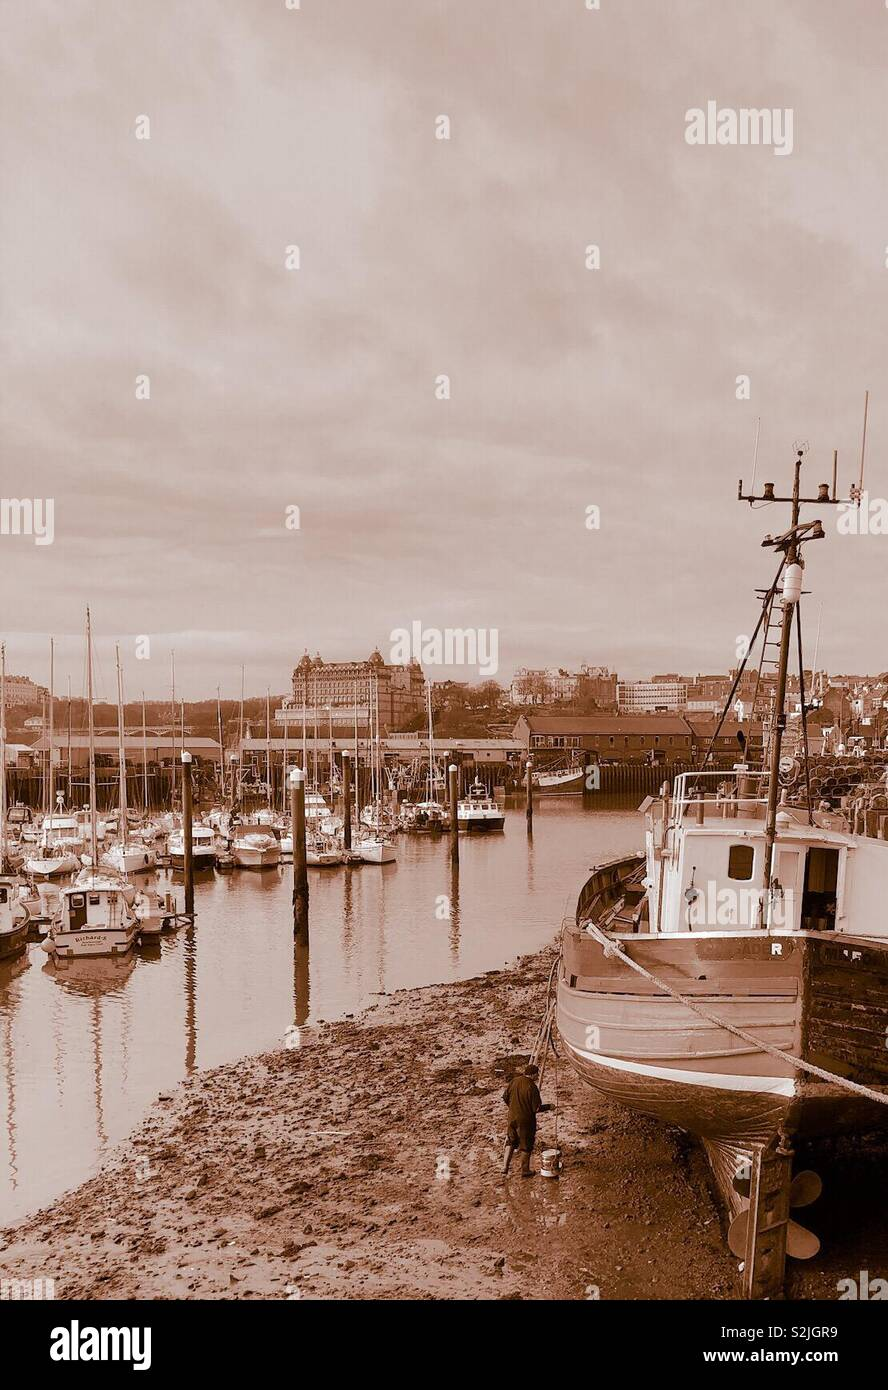 Man painting a boat in a harbour, in sepia tones - Stock Image